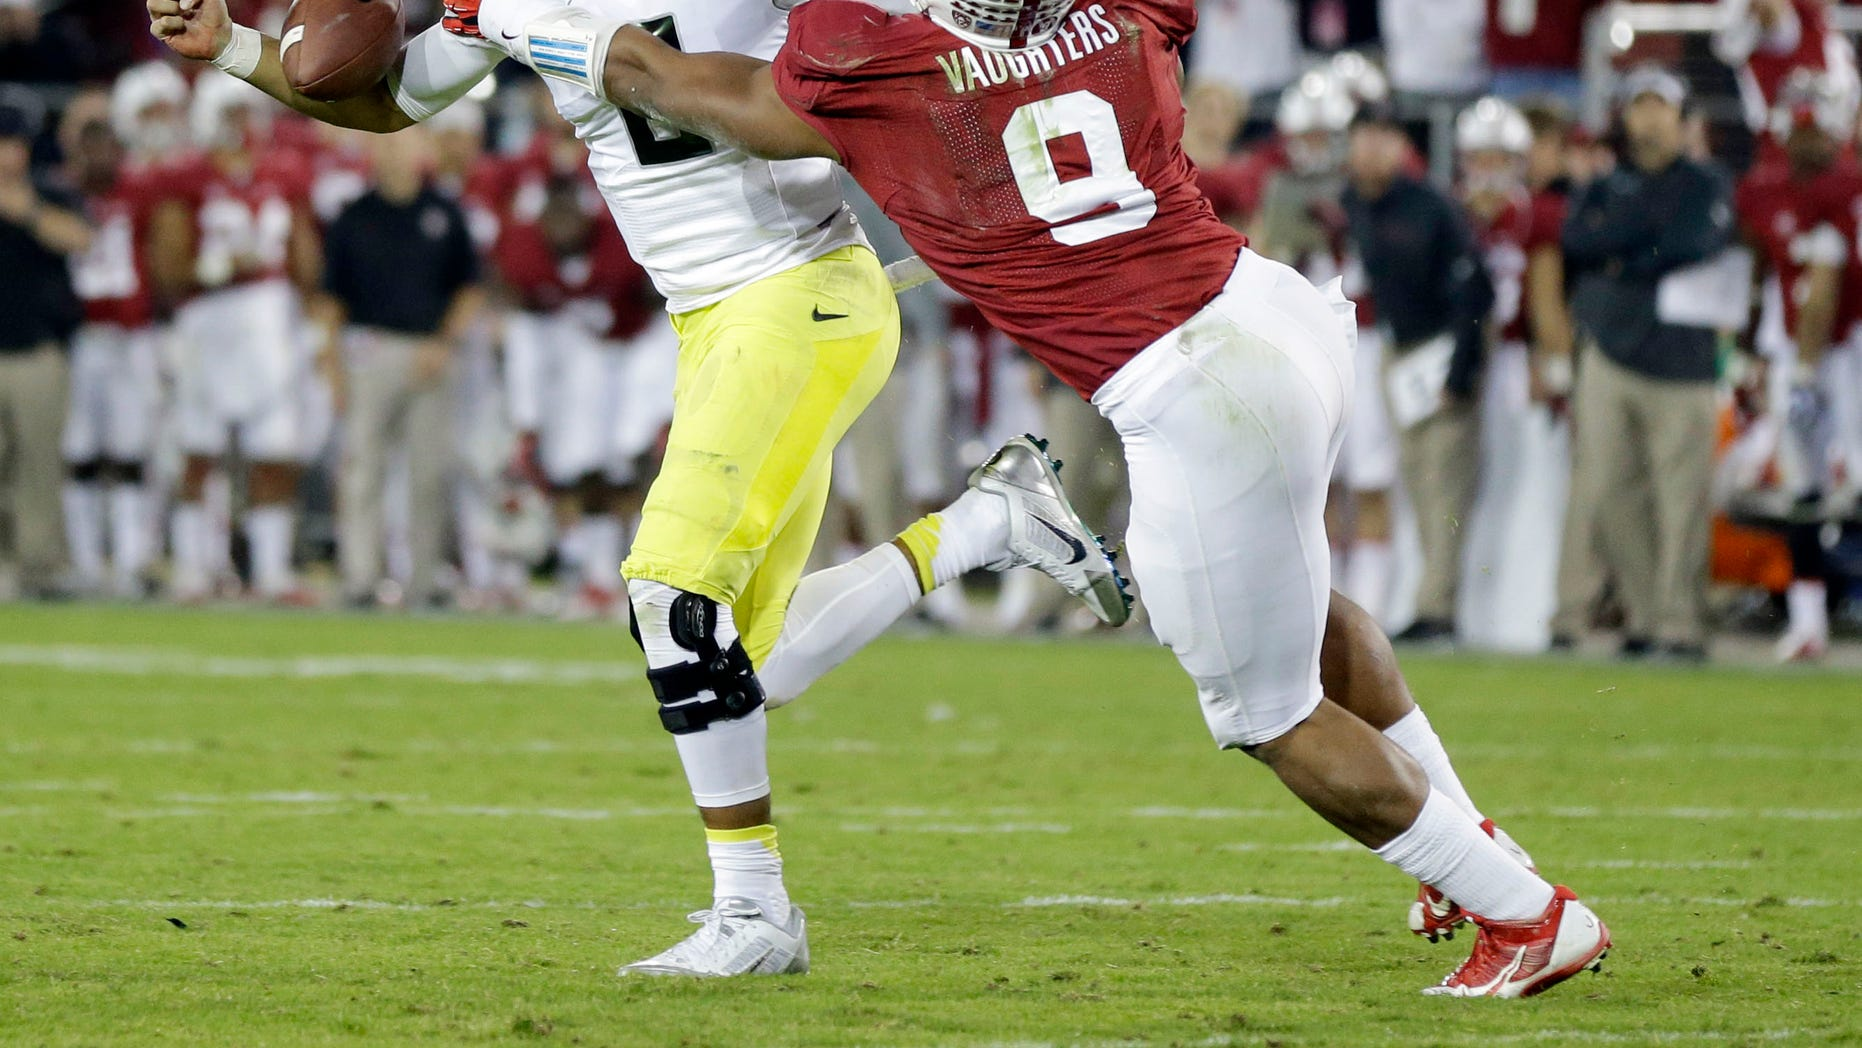 Oregon quarterback Marcus Mariota fumbles near the goal line while pressured by Stanford linebacker James Vaughters during the second half of an NCAA college football game on Thursday, Nov. 7, 2013, in Stanford, Calif. Oregon would recover the ball on the play. Stanford won 26-20. (AP Photo/Marcio Jose Sanchez)